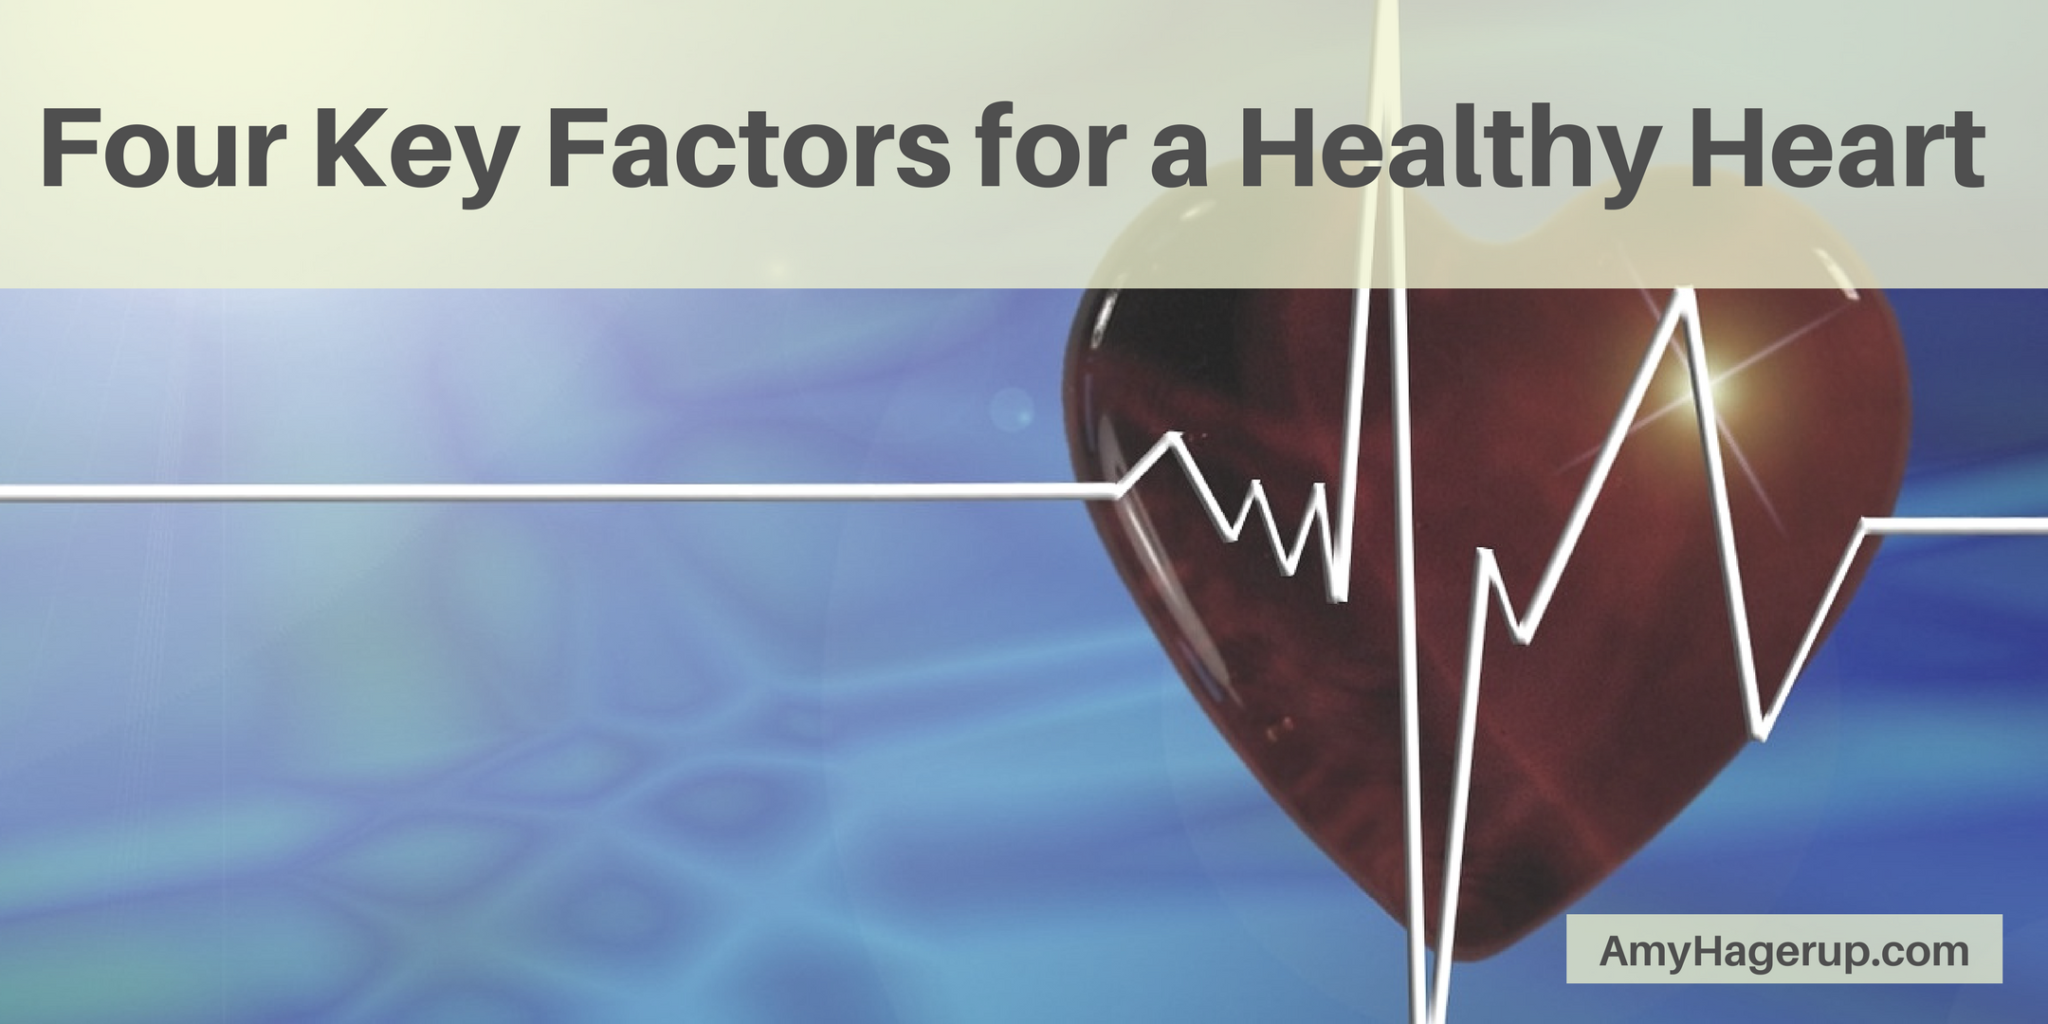 Check out 4 key factors for a healthy heart.